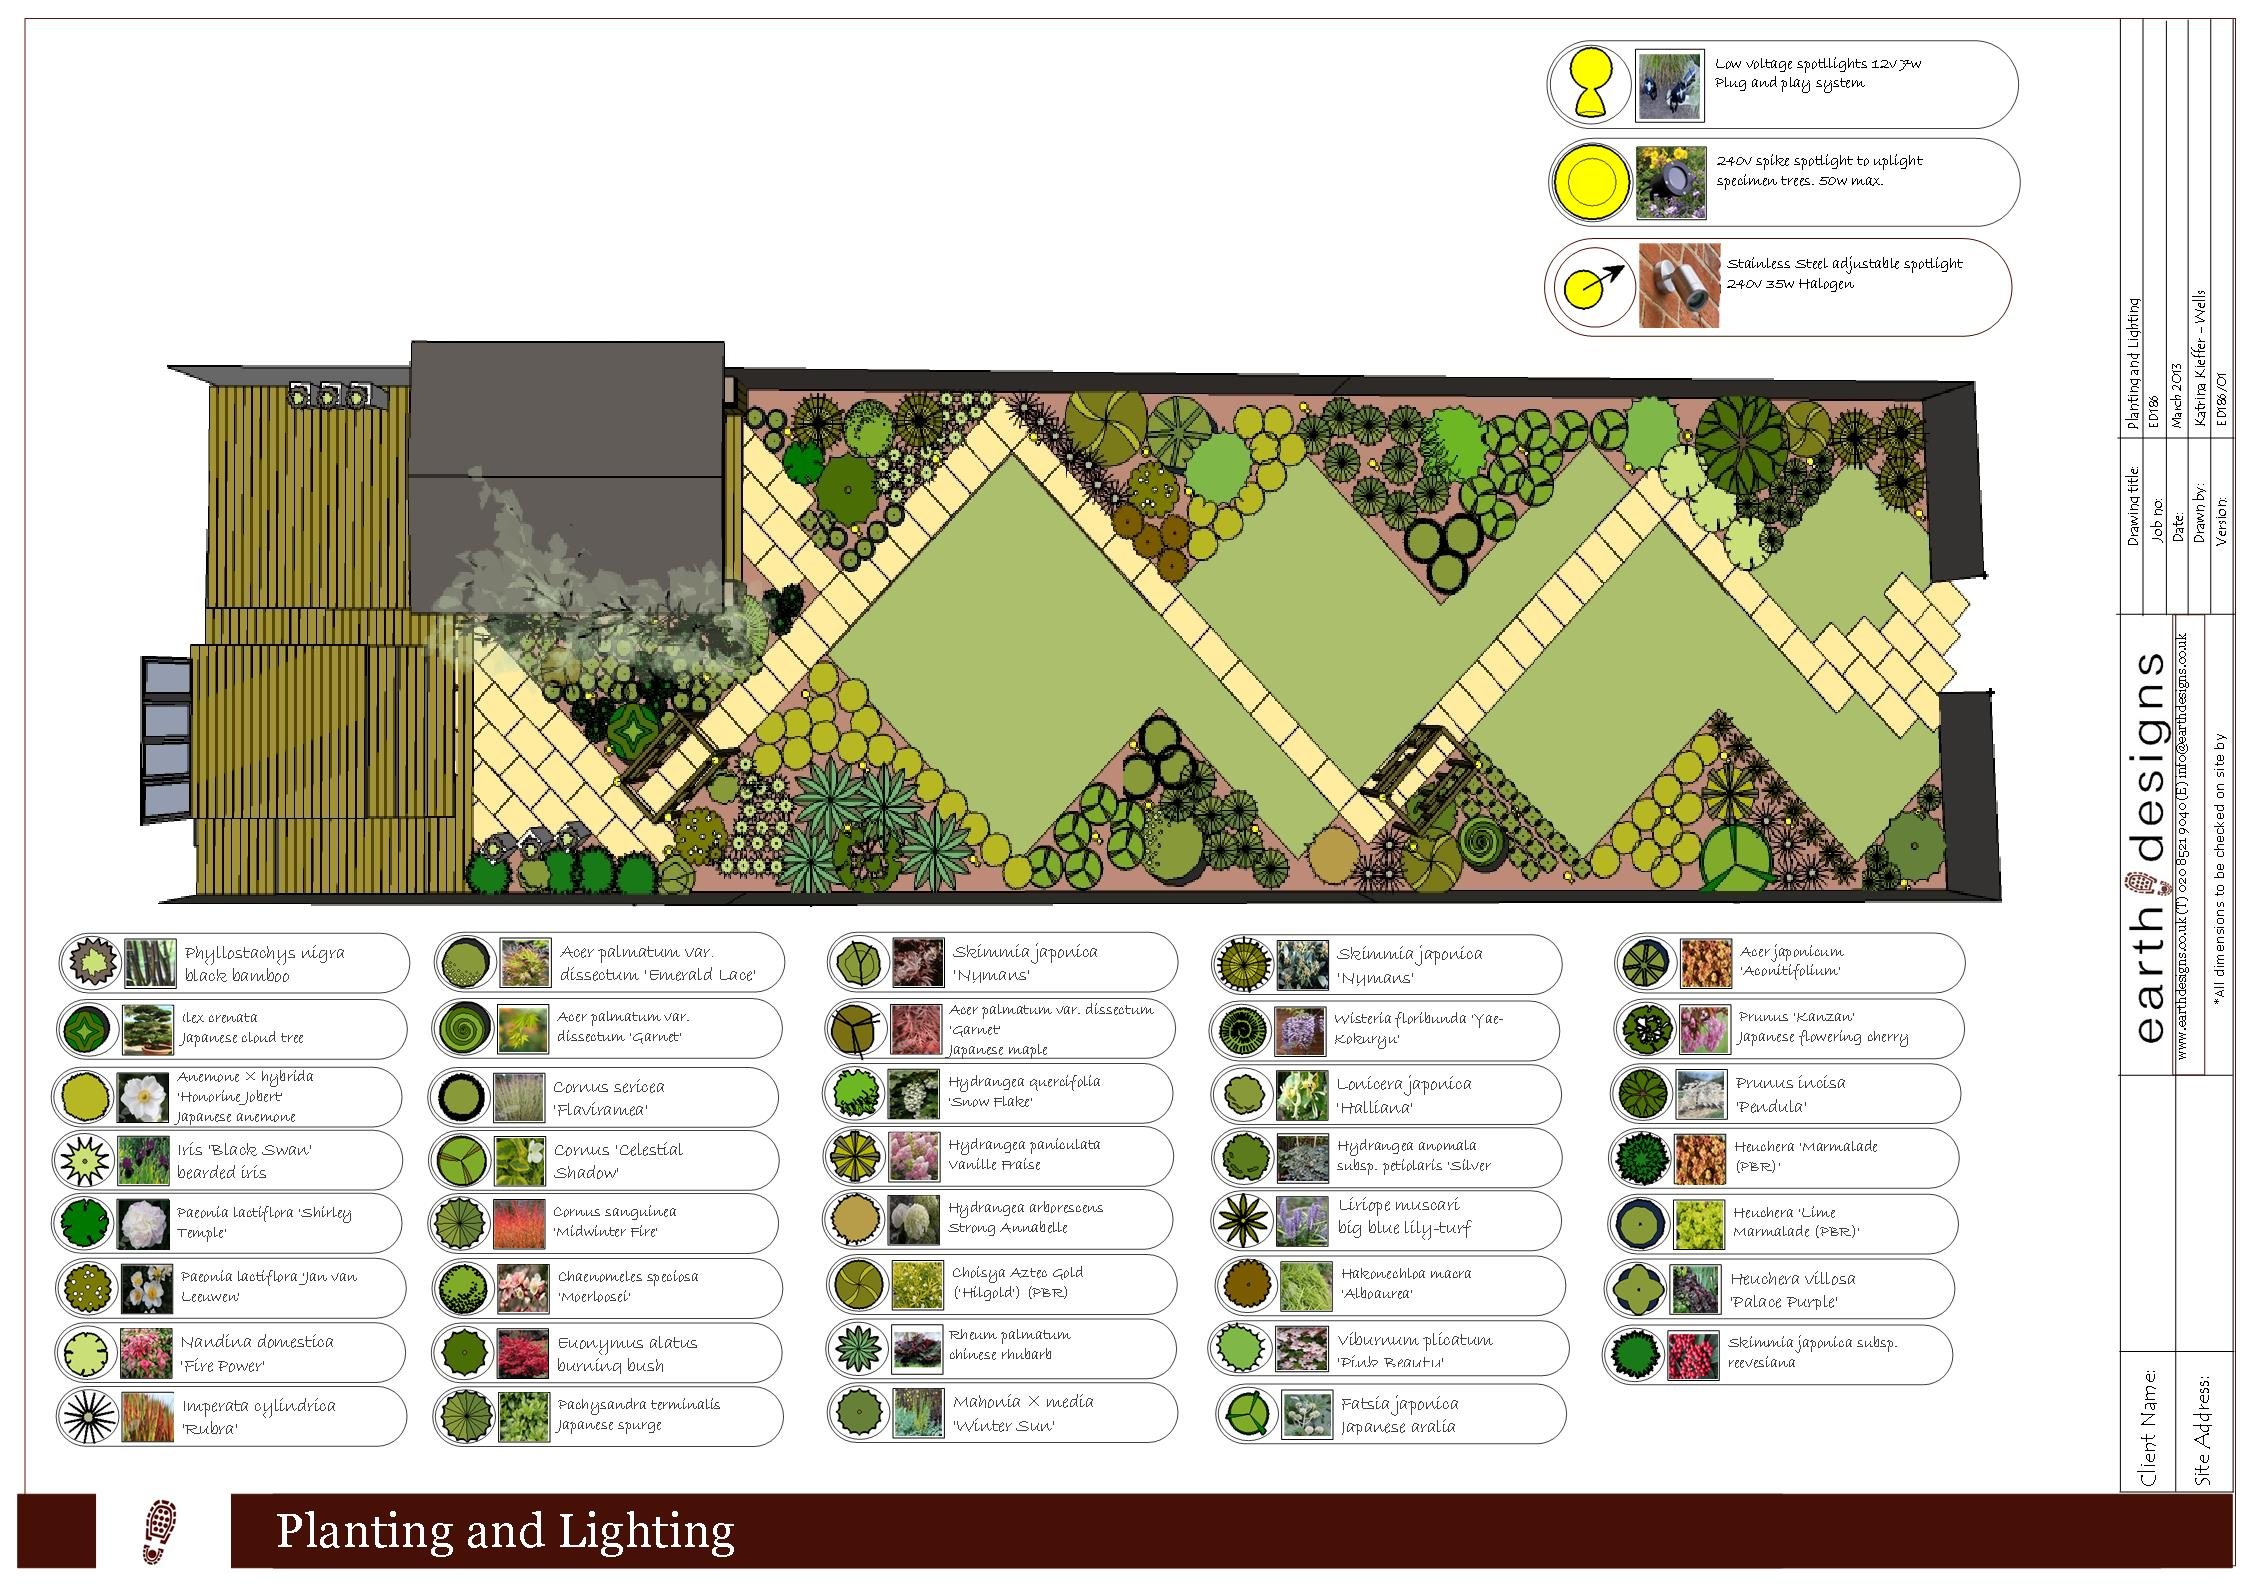 Garden design essex a japanese designed garden in essex for Garden design planting schemes